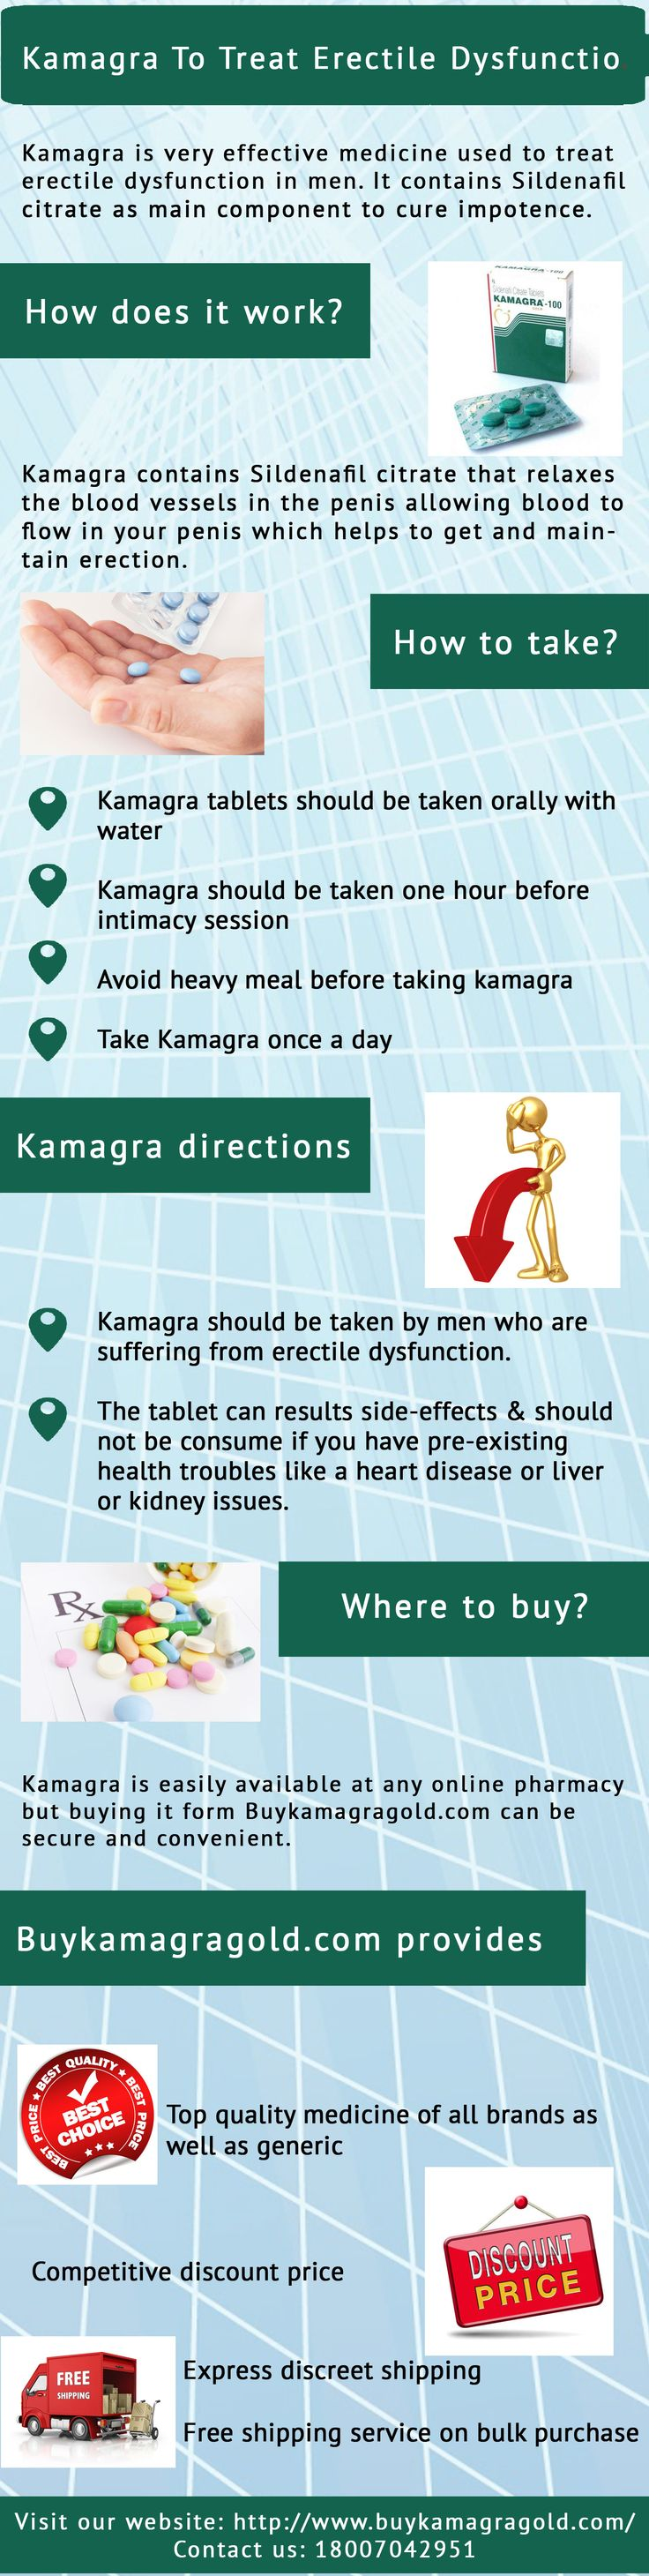 Use Kamagra to treat erectile dysfunction in men. You will get this kamagra tablets at low price from Buykamagragold.com in safe and secure way. For more: http://www.buykamagragold.com/